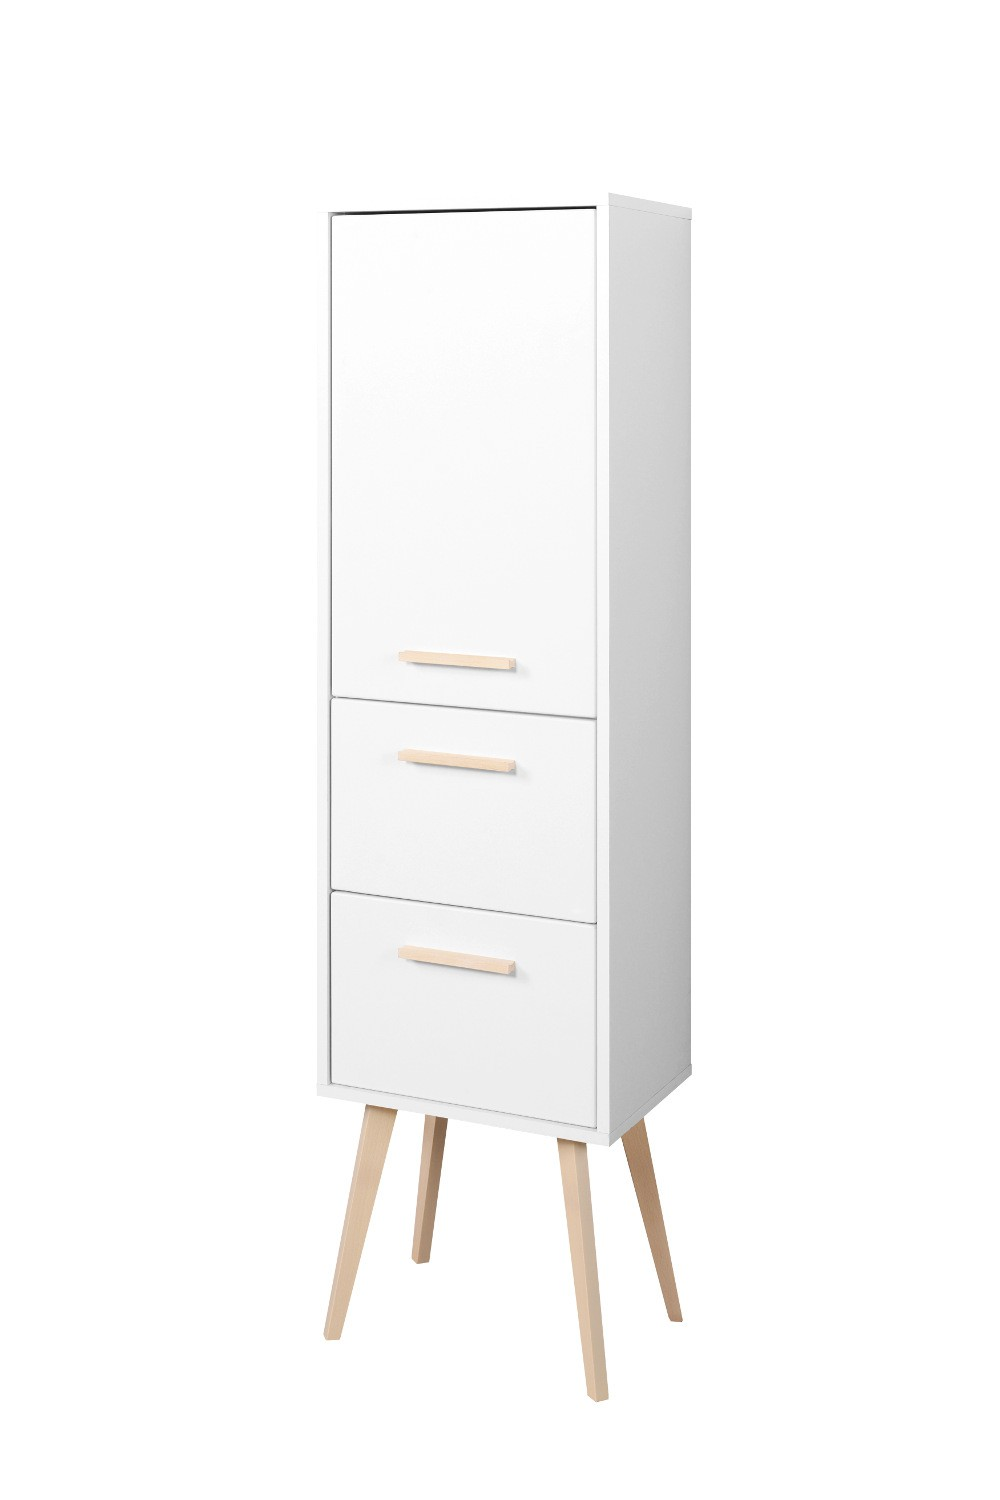 badezimmer midischrank malm midi highboard badschrank 40 cm weiss matt ebay. Black Bedroom Furniture Sets. Home Design Ideas